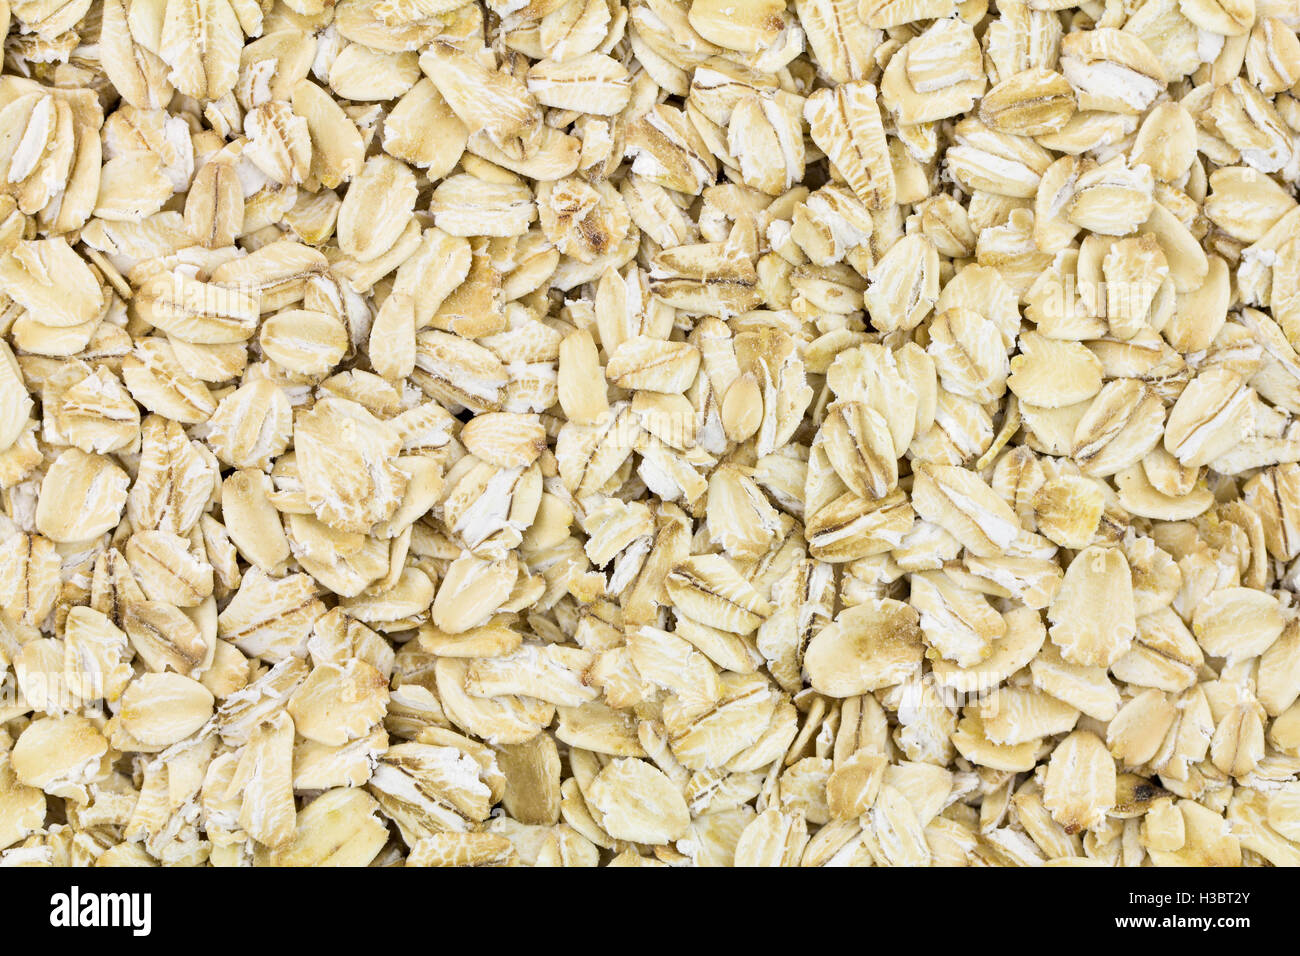 how to use steel cut oats